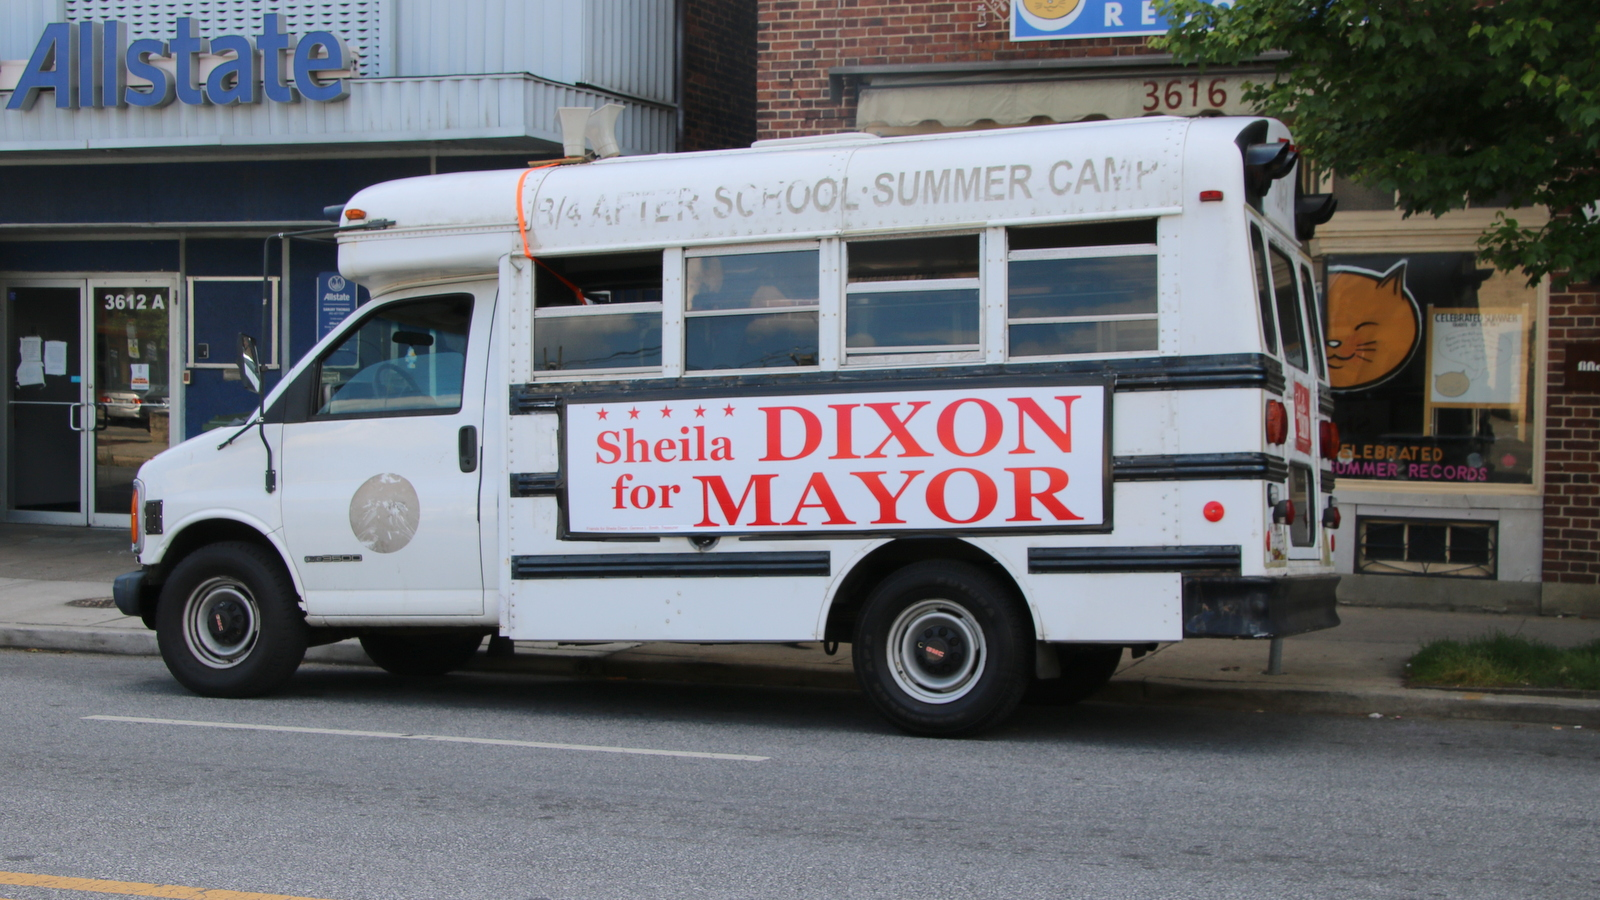 A Dixon bus parked in Hampden. (Fern Shen)